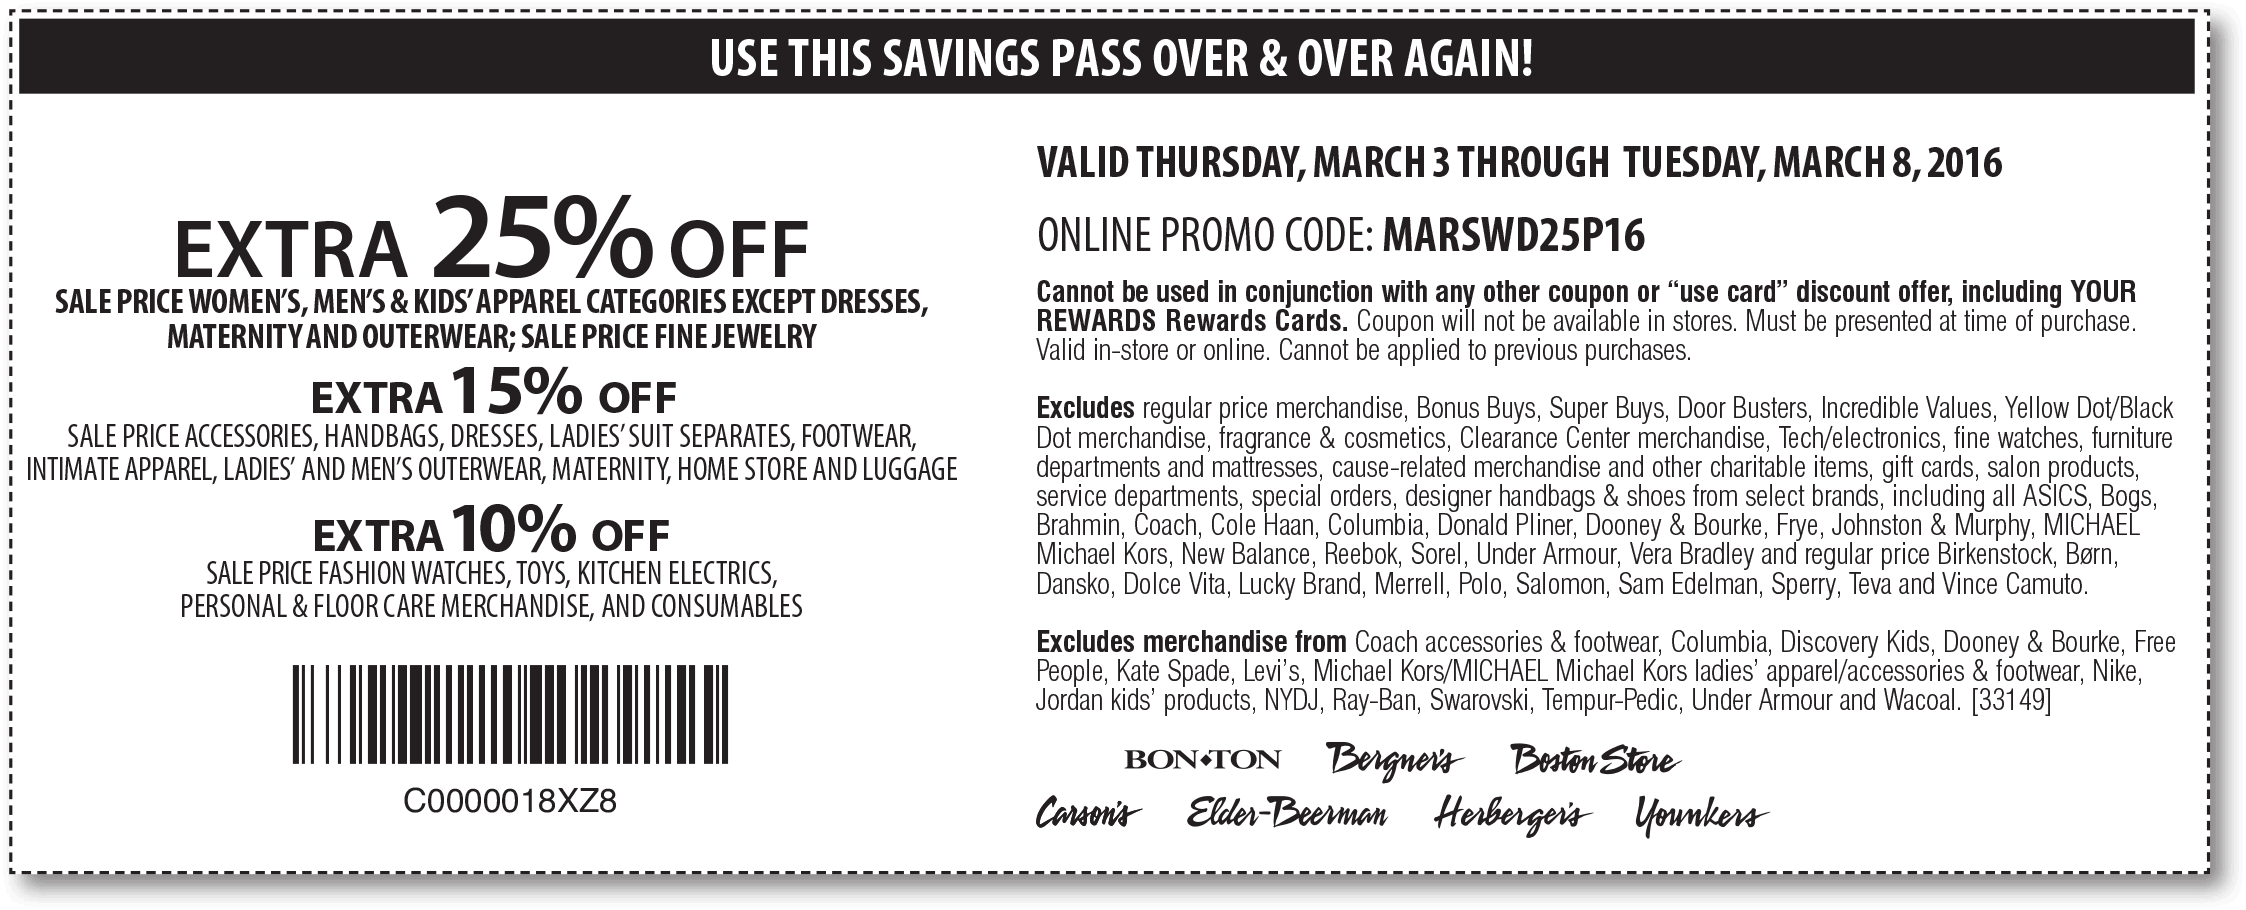 Carsons Coupon January 2018 Extra 25% off sale apparel at Bon Ton, Carsons, Boston Store, Elder-Beerman, or online via promo code MARSWD25P16